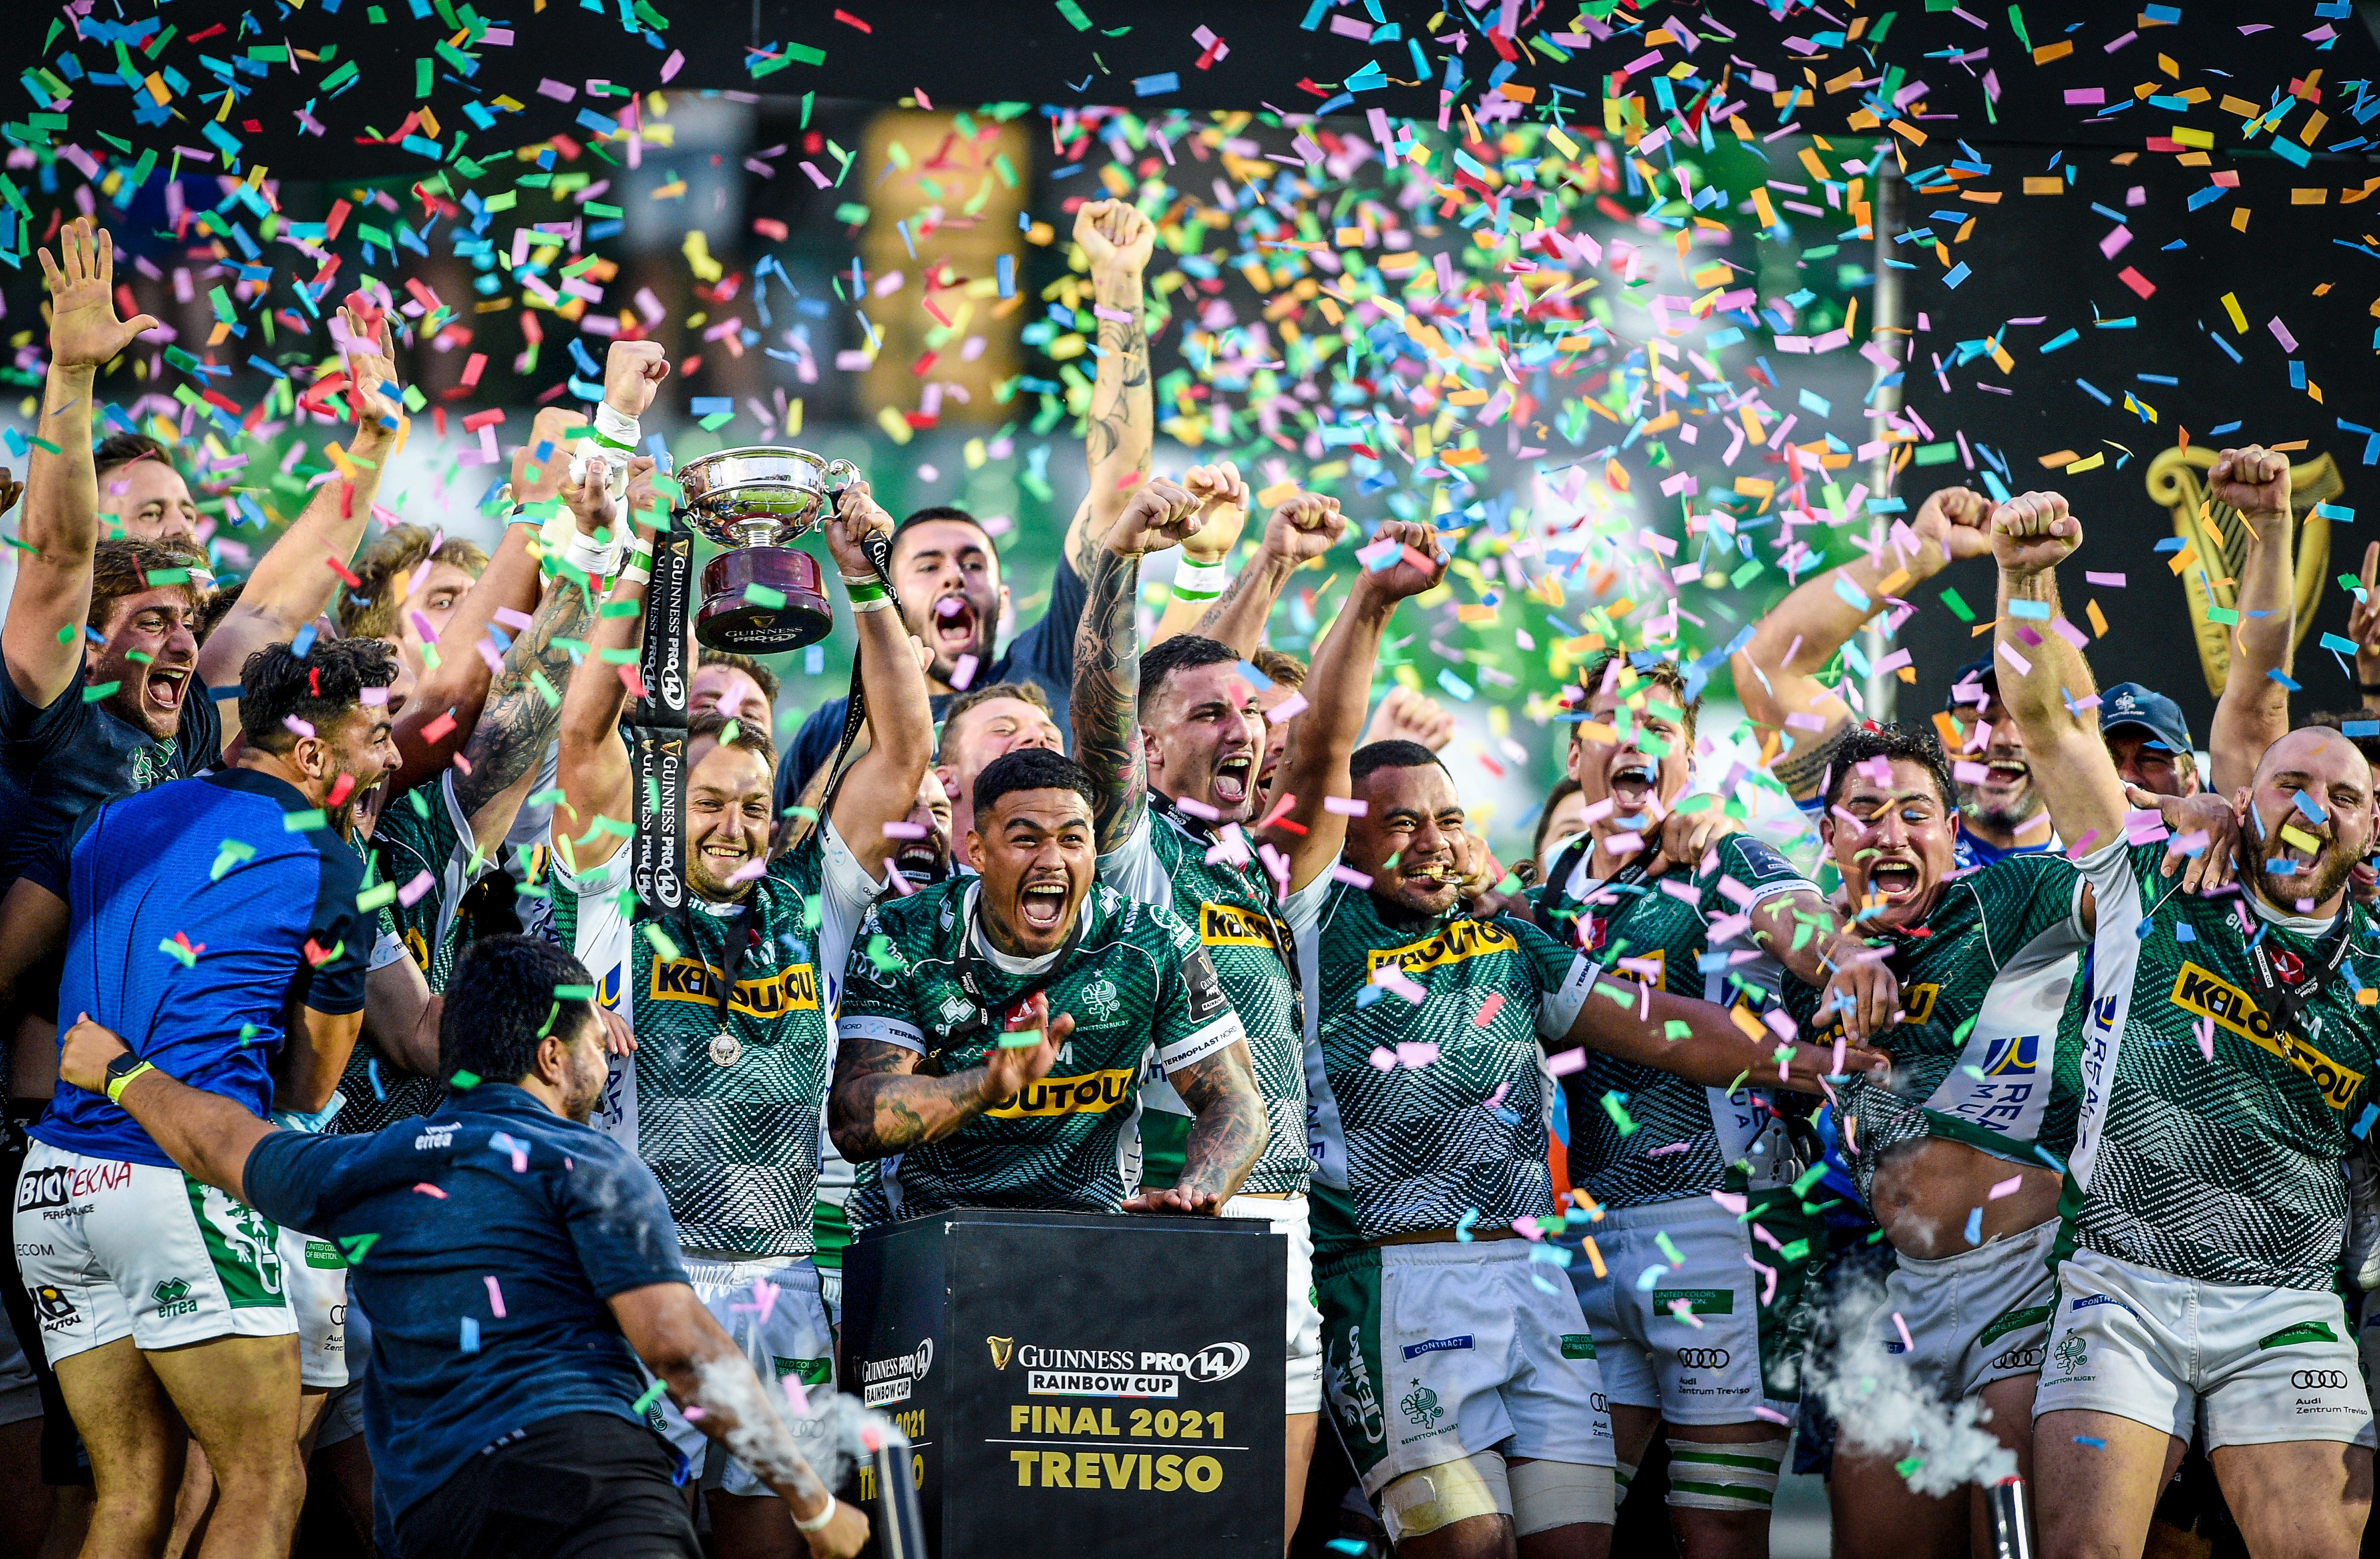 Benetton romp to Rainbow Cup victory against the Bulls